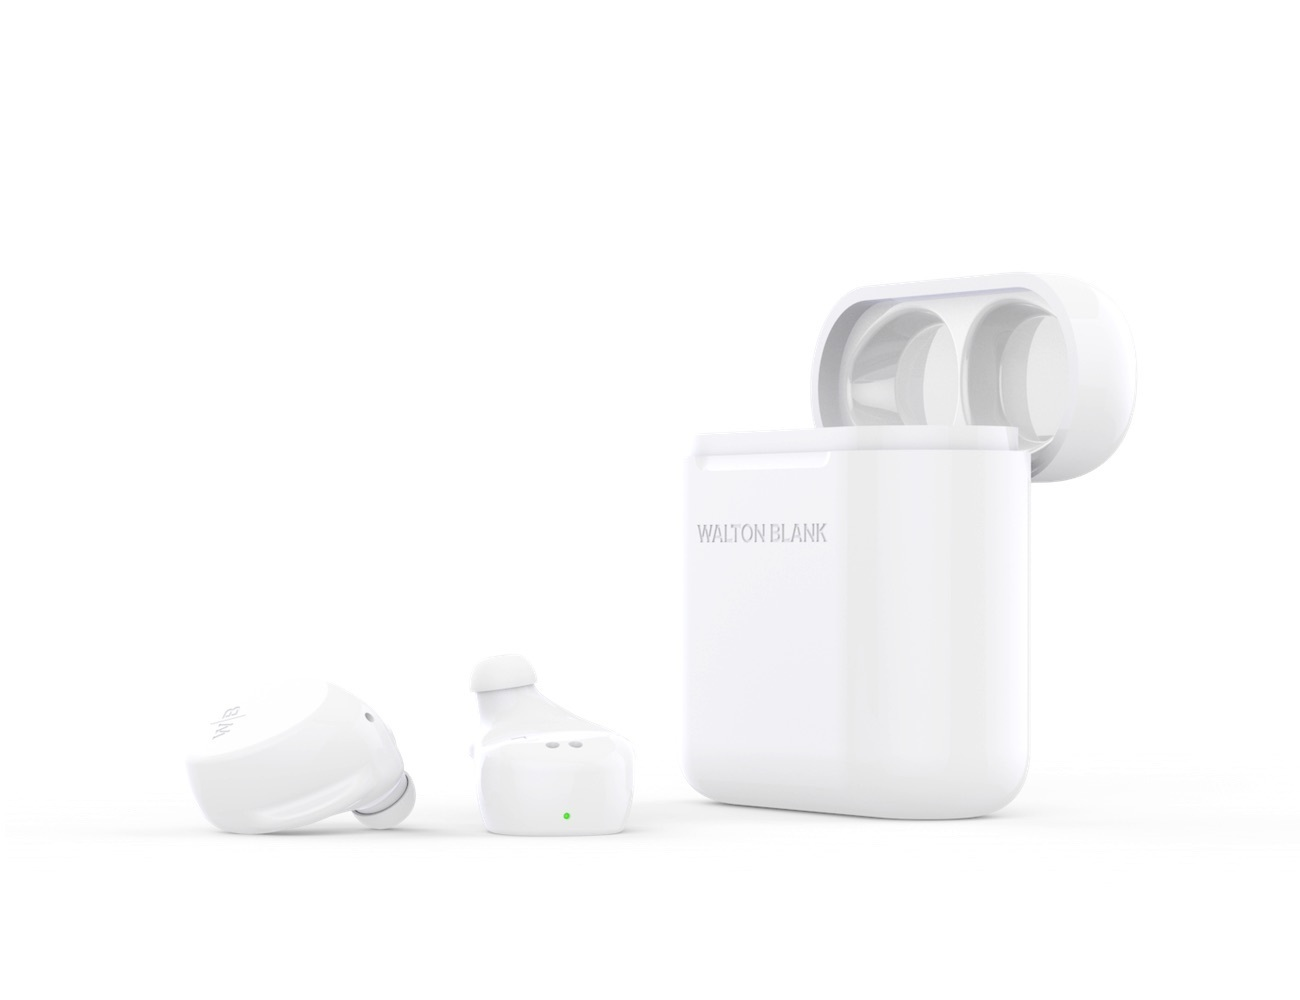 waterprood wireless earbuds 04